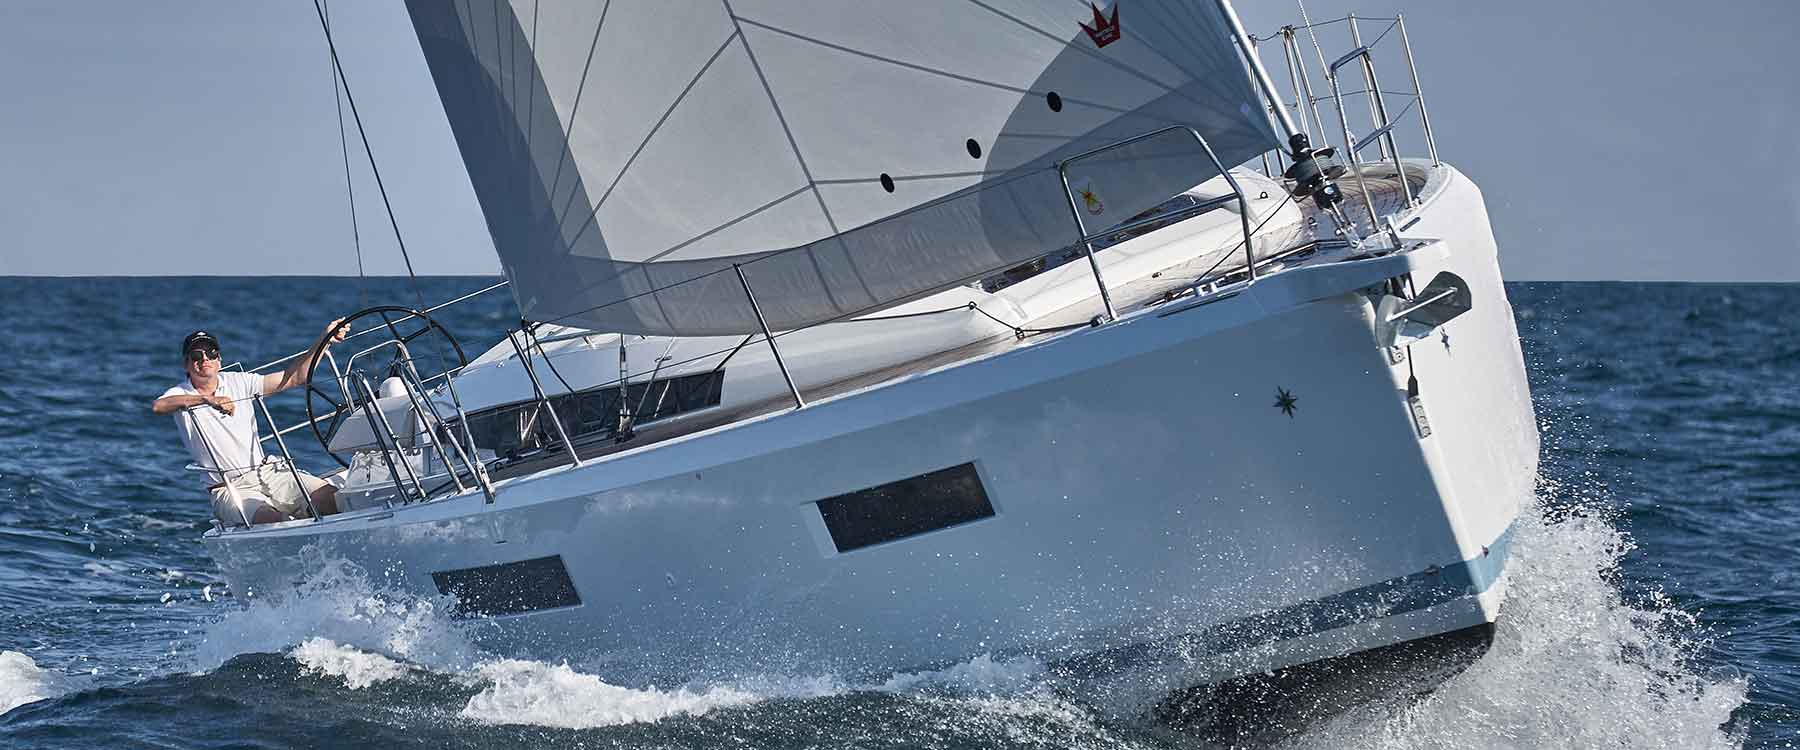 Fountaine Pajot Jeanneau Yachts At Atlantic Cruising Yachts